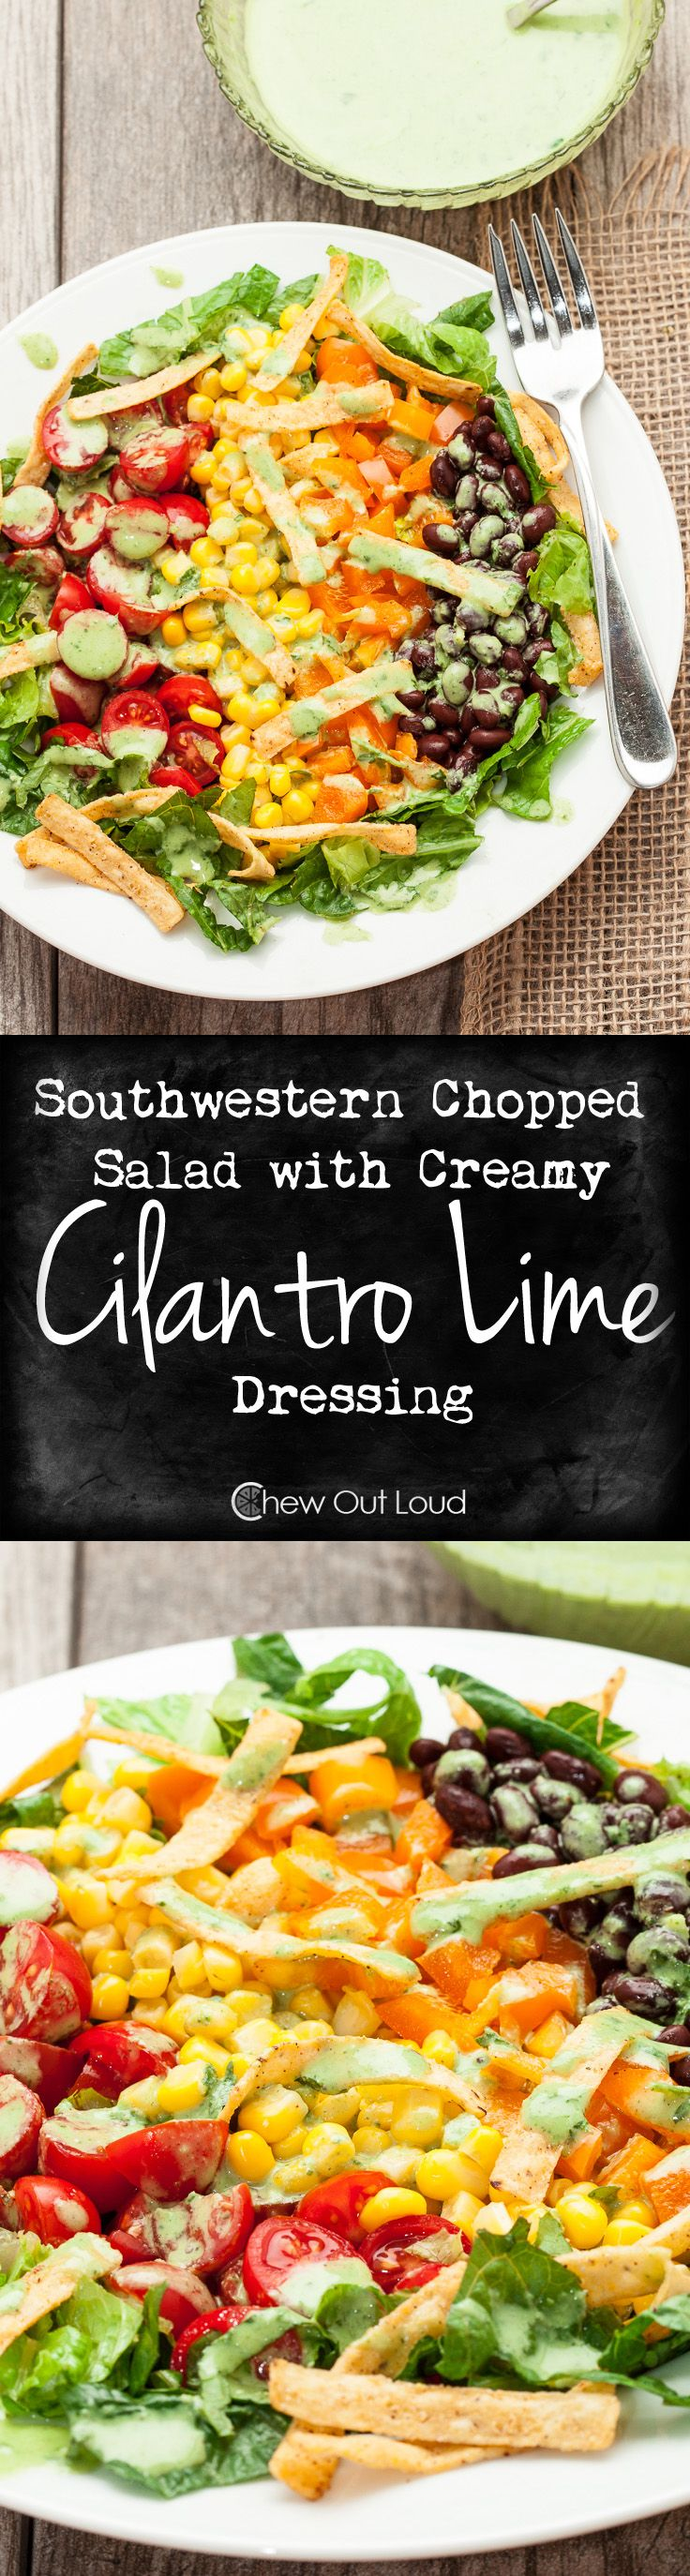 Southwestern Chopped Salad with Creamy Cilantro Lime Dressing.  Light, Refreshing, Zesty, Tangy, YUM!  Get your greens + oranges + yellows + reds + protein all at once!